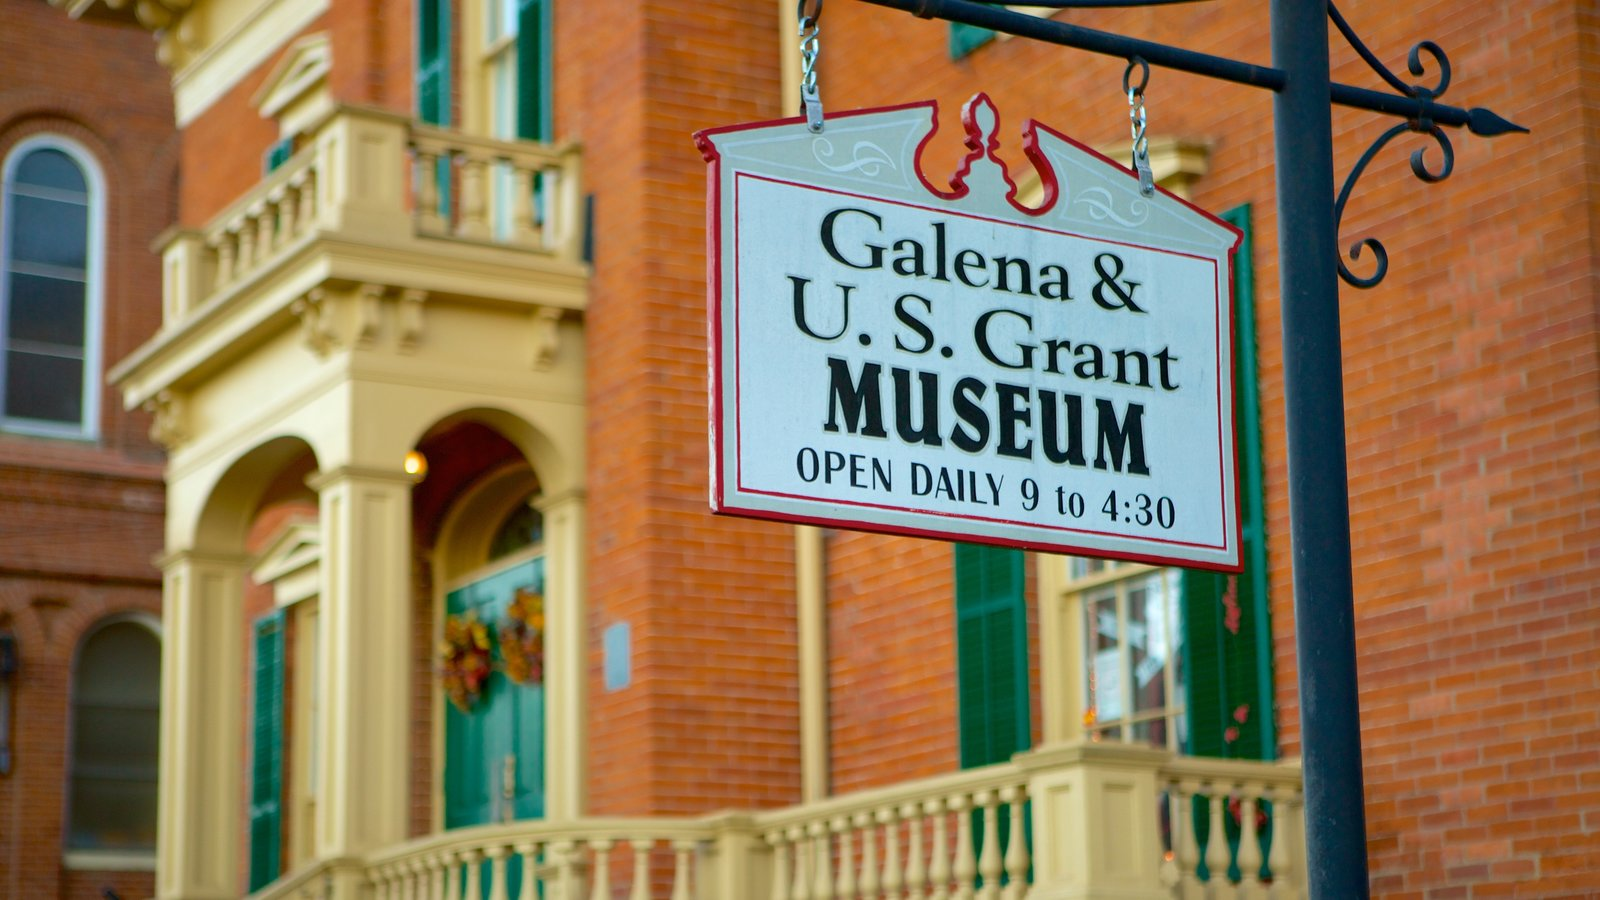 Galena featuring signage